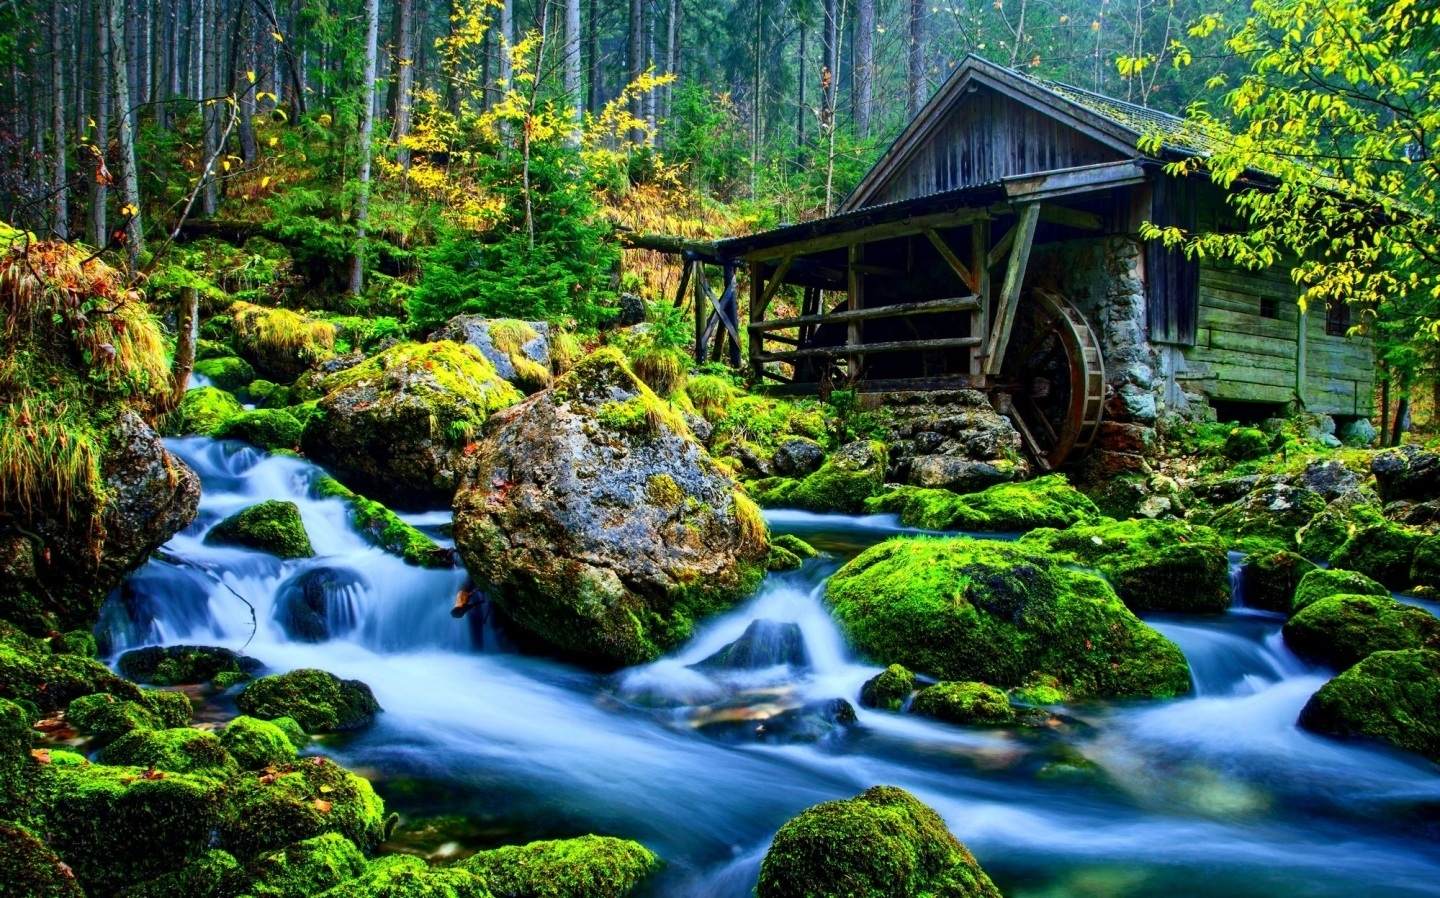 10 best animated wallpaper free download full hd 1080p for pc background